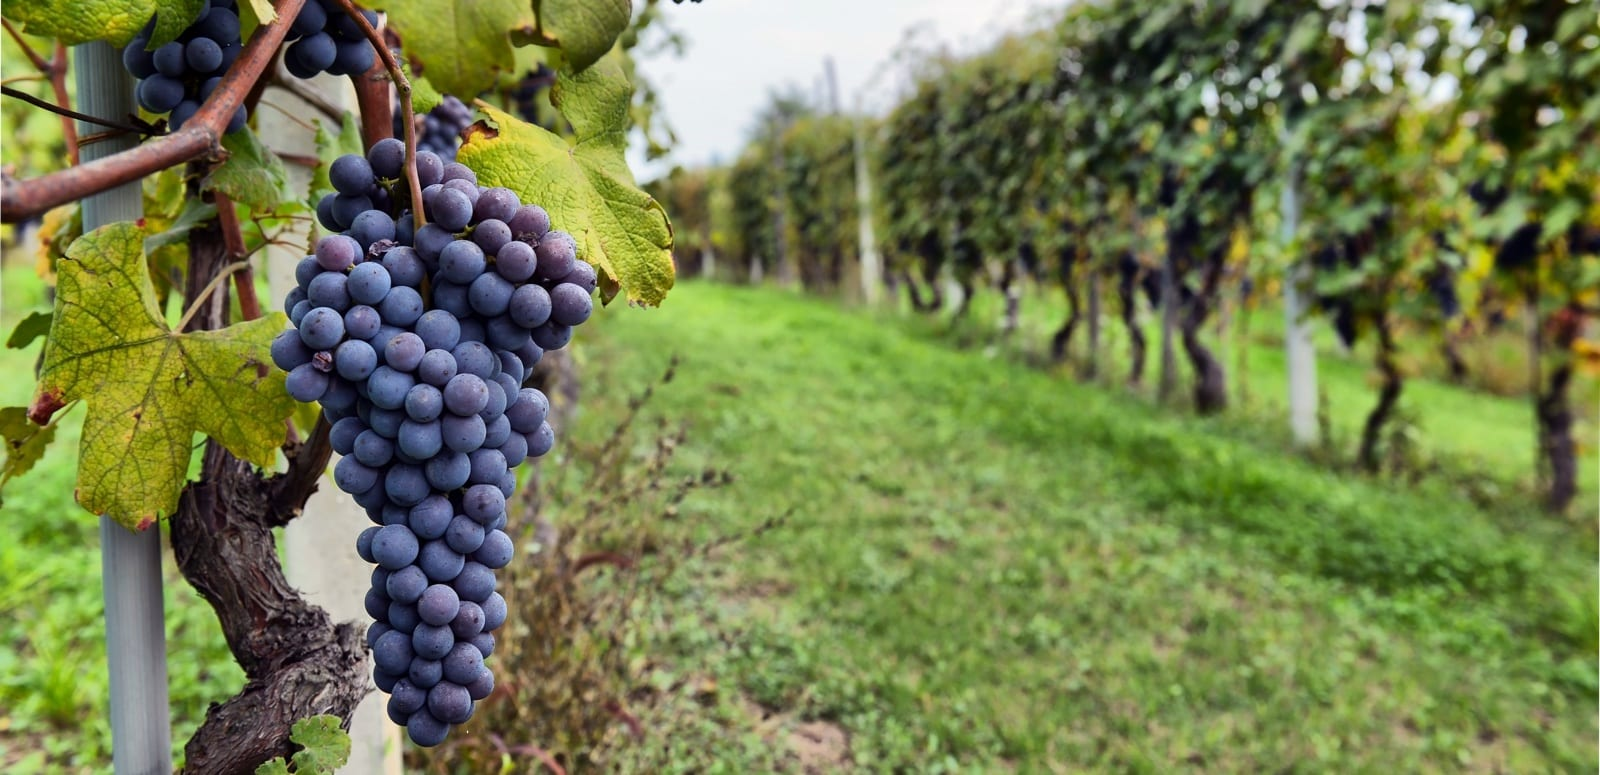 Wine Tour Photos in Long Island NY with LI Vineyard Tours®